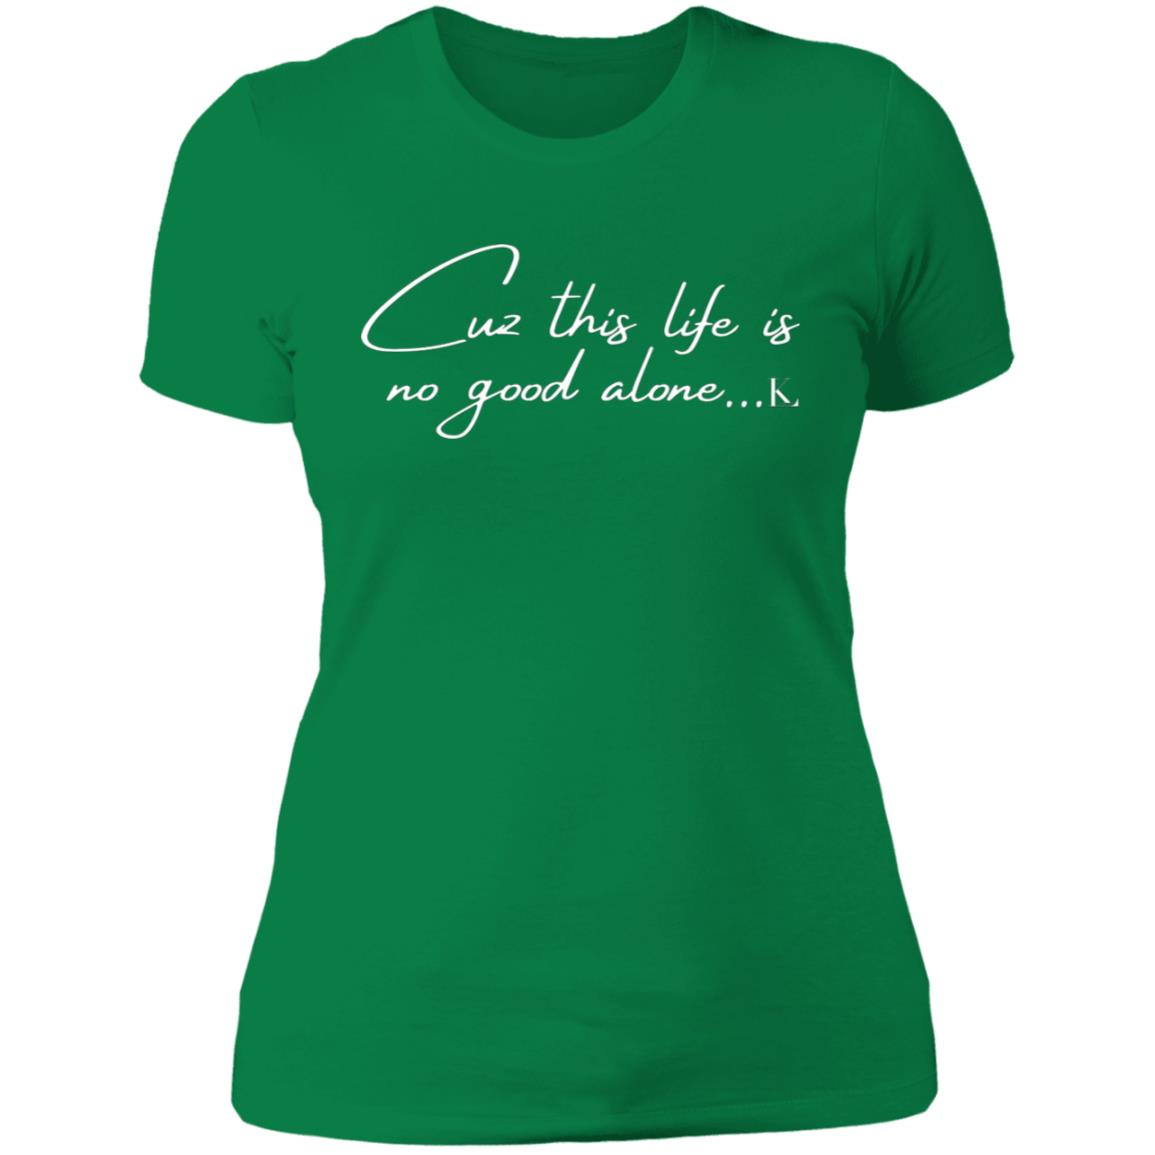 Cuz This Life Is No Good Alone... Women's Crew T-Shirt